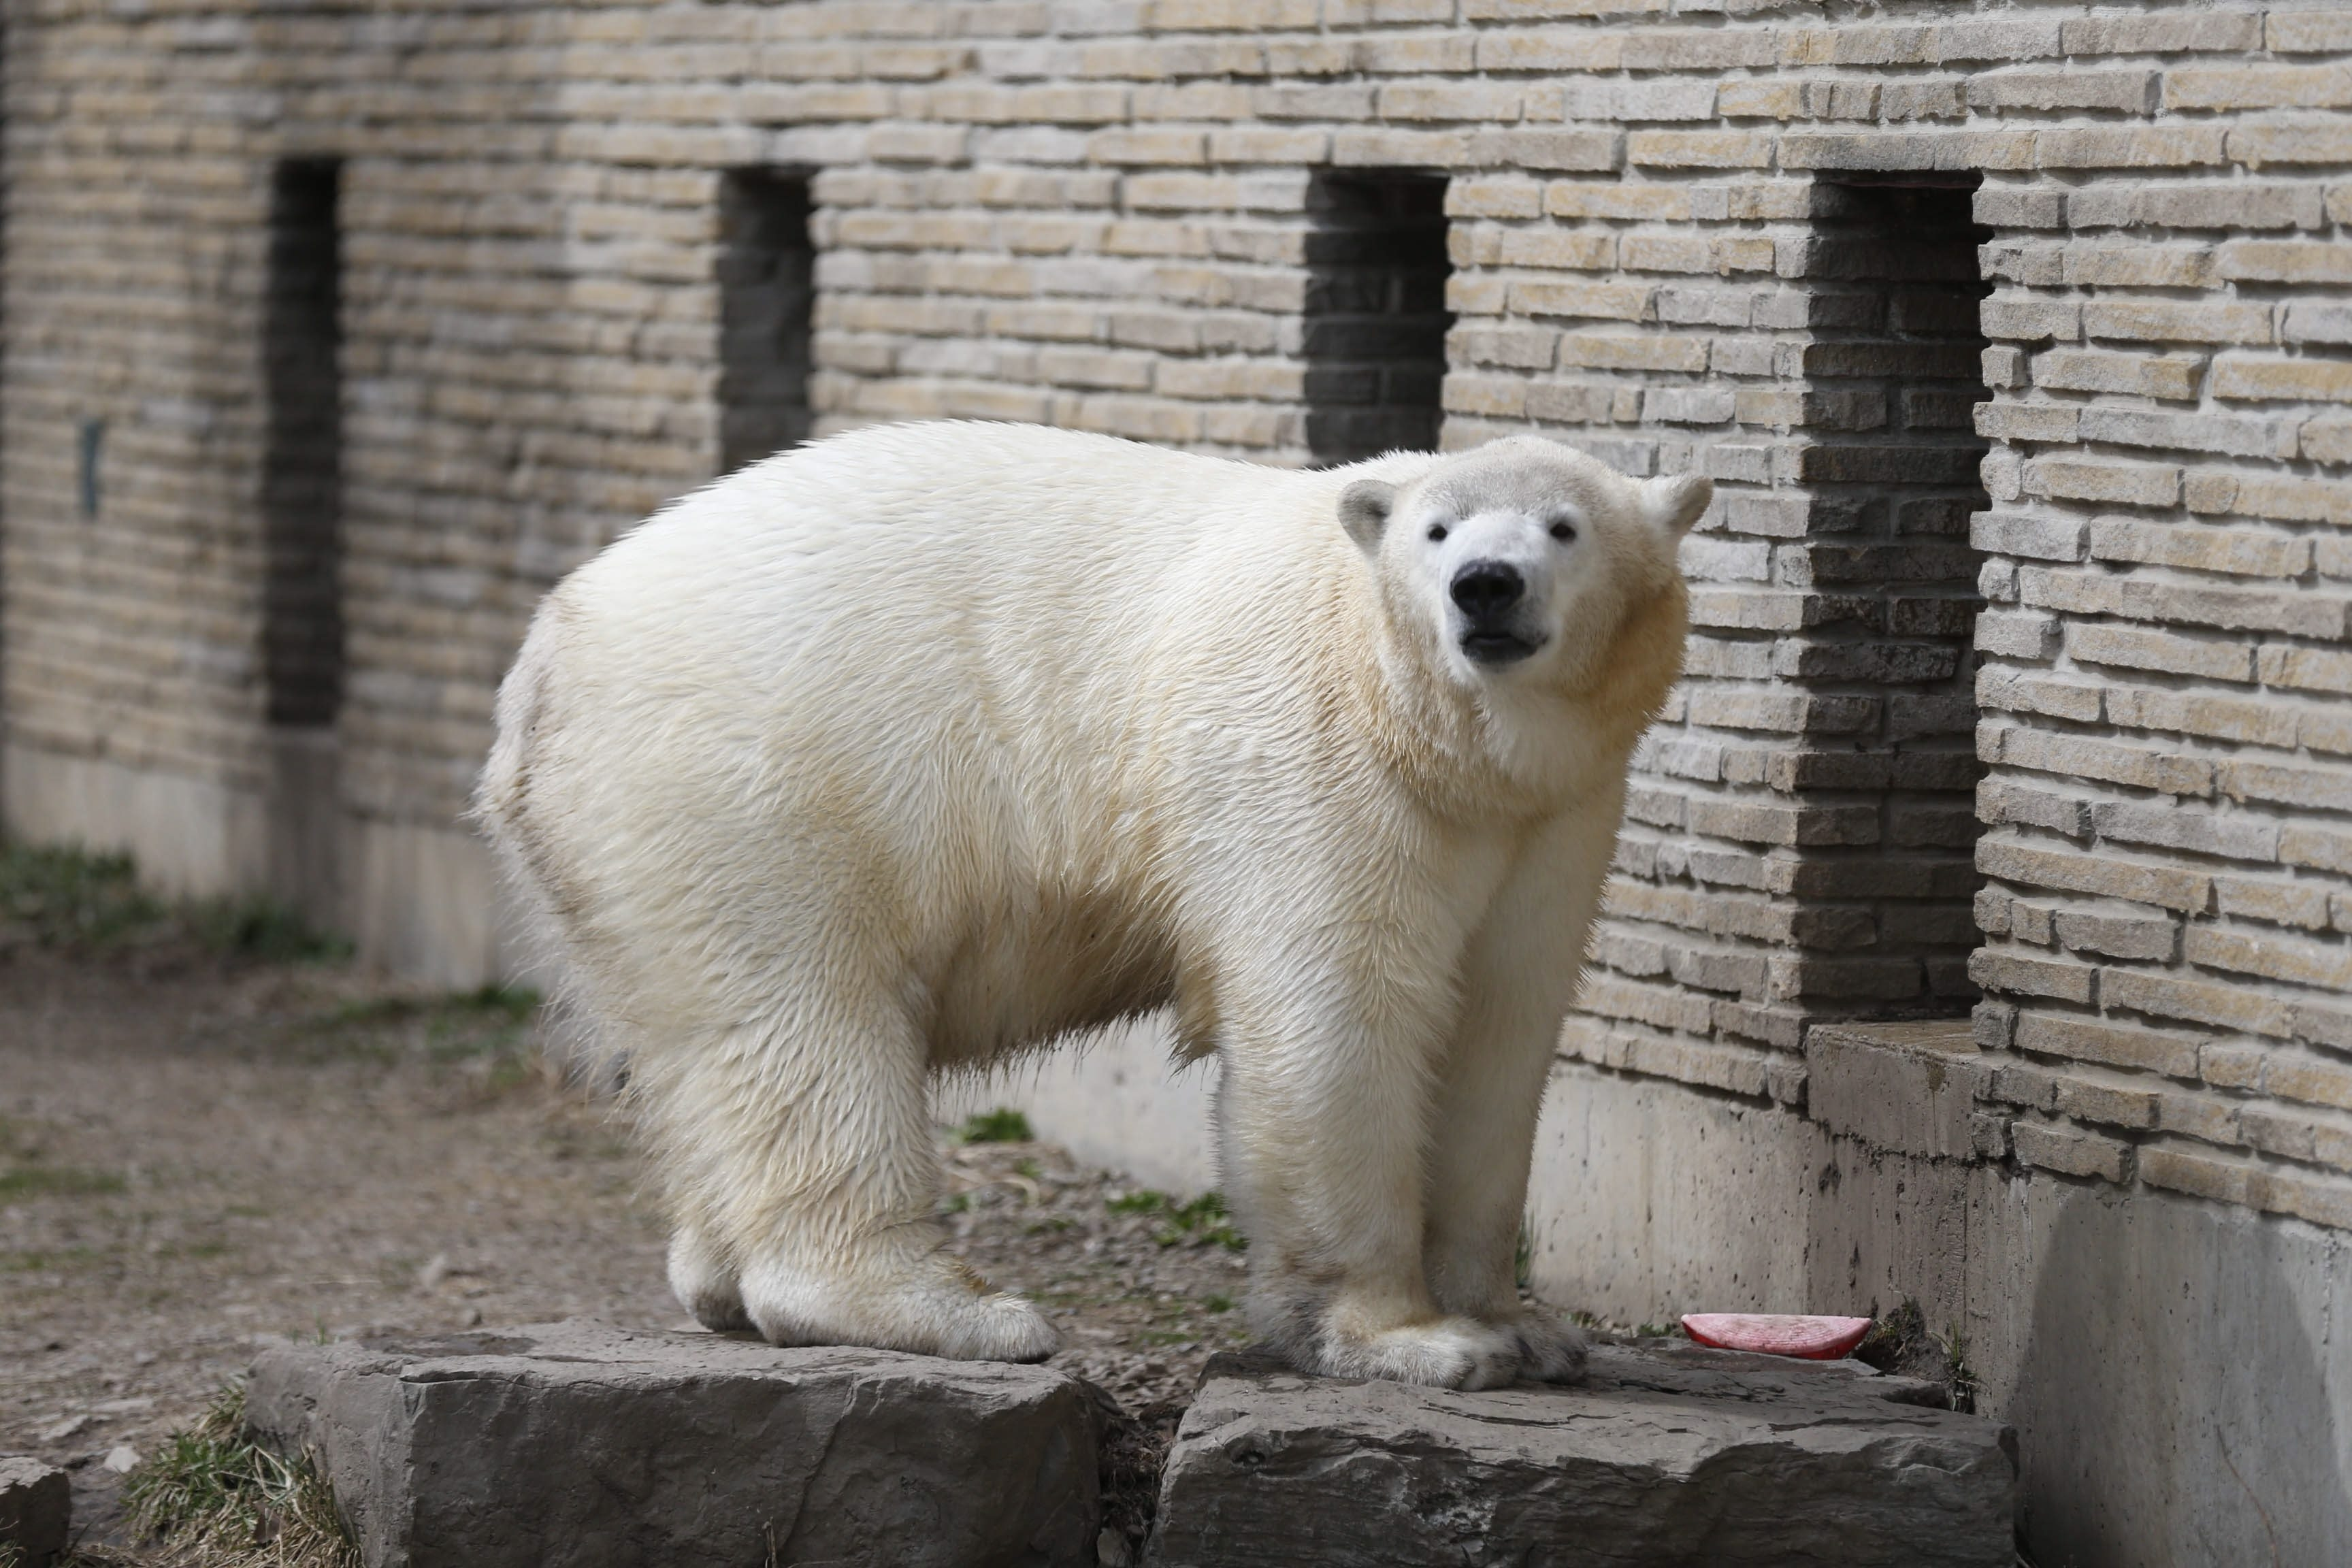 Orphaned polar bear Kali will make his public debut at the St. Louis Zoo on June 6.